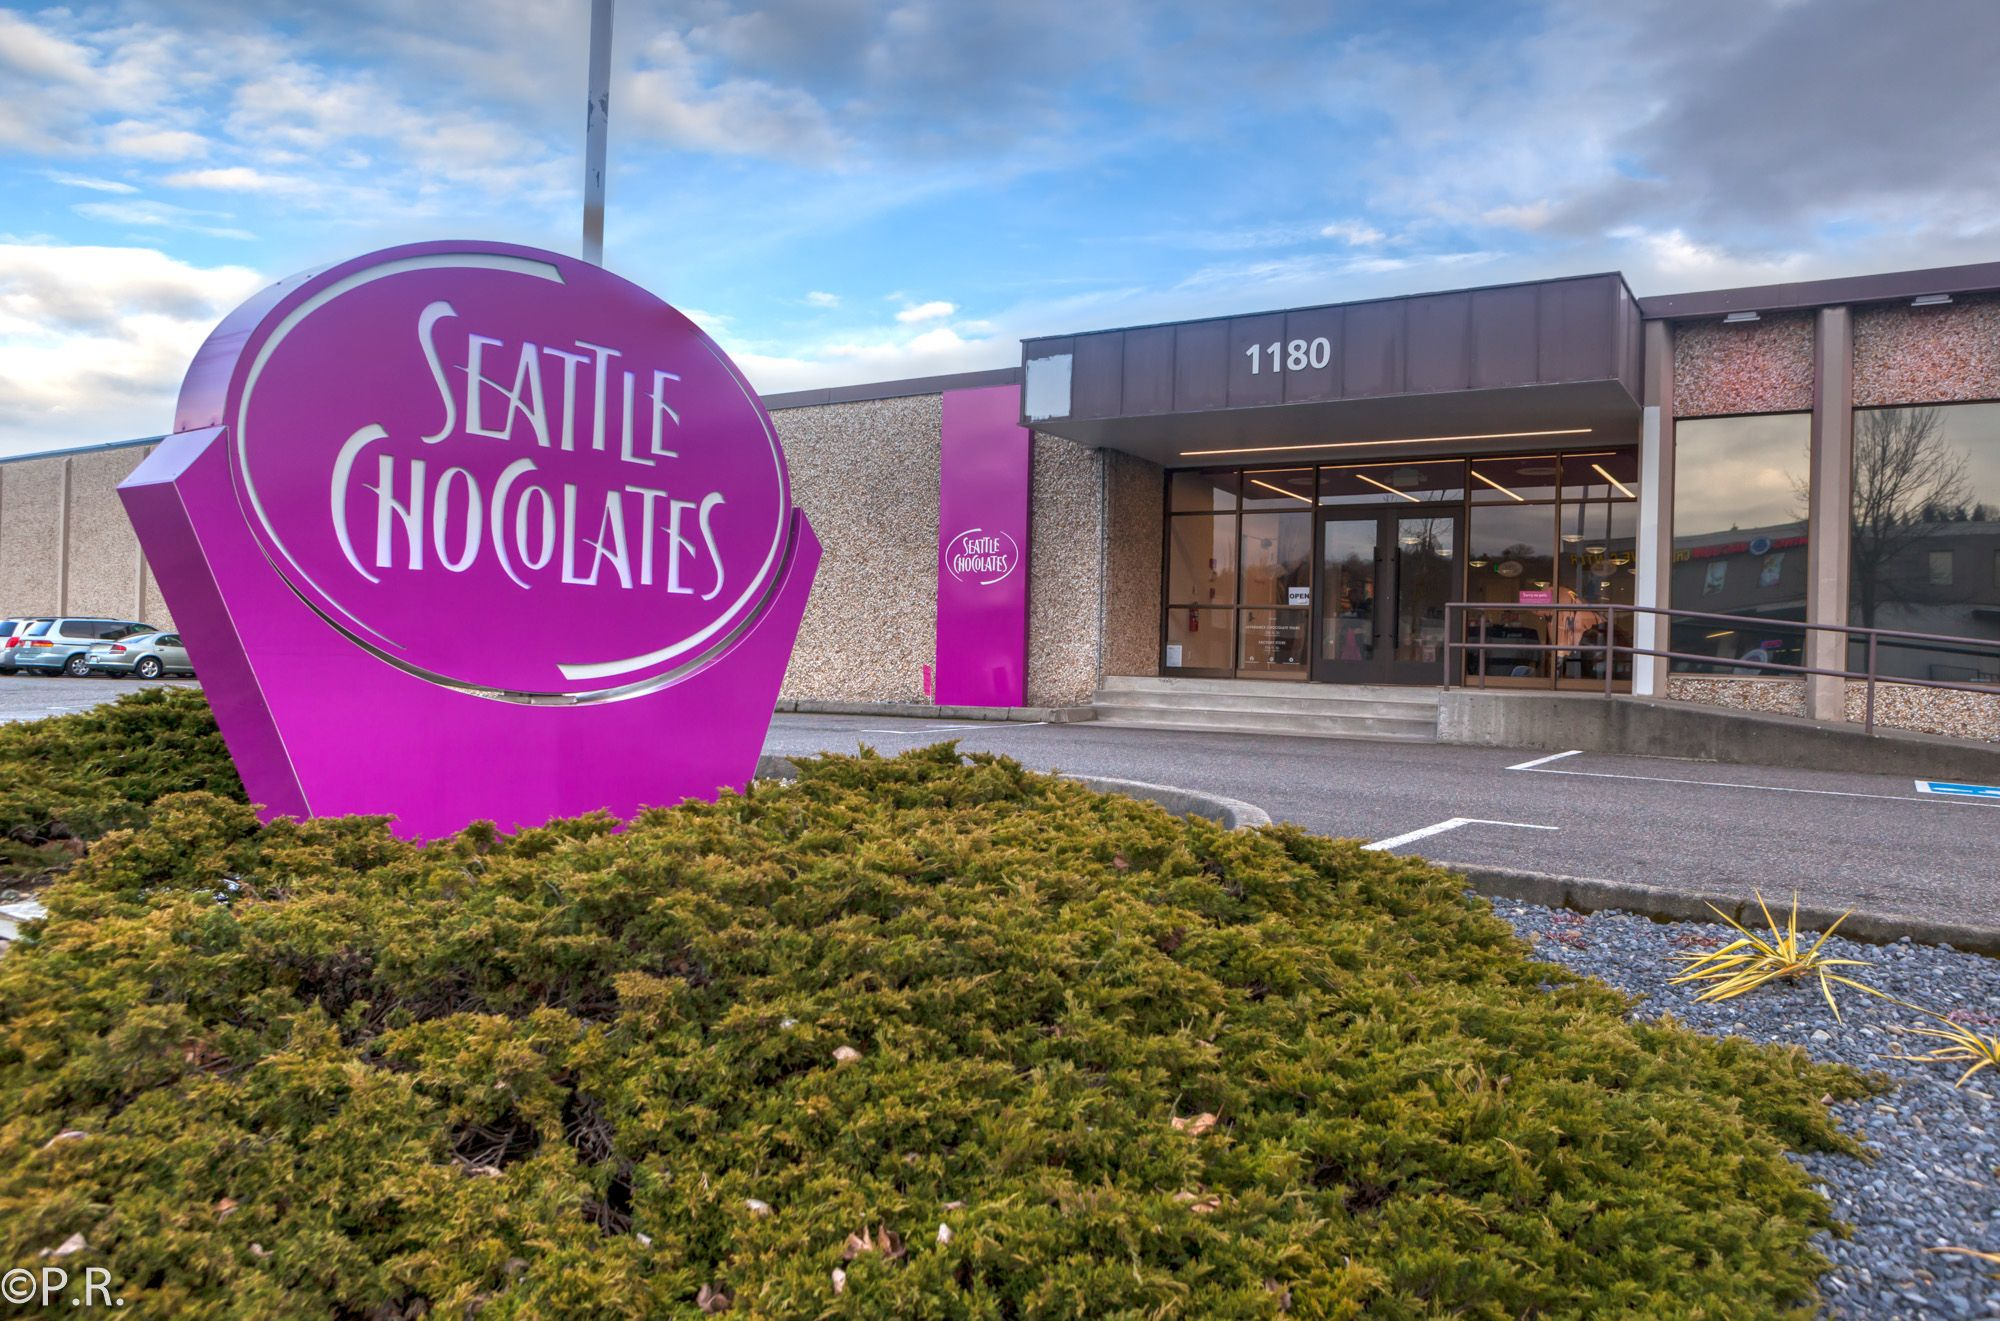 Seattle's Newest and Sweetest Attraction: Seattle Chocolates Factory Tour